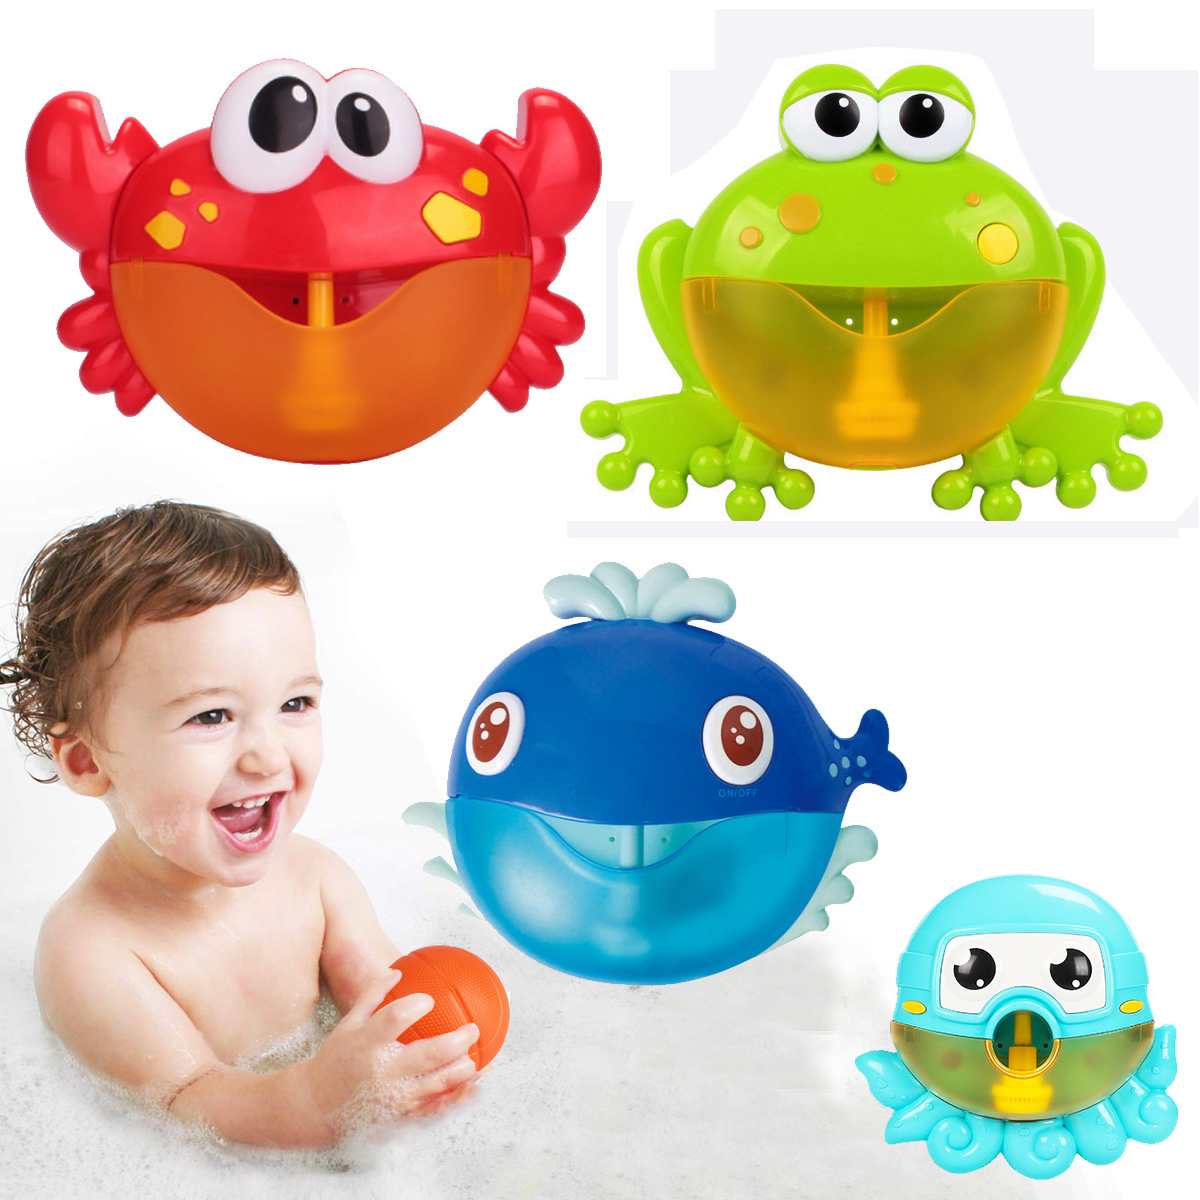 Outdoor Bubble Machine Crabs&Frog Music Kids Bath Toy Bathtub Soap Automatic Bubble Maker Baby Bathroom Toy for Children